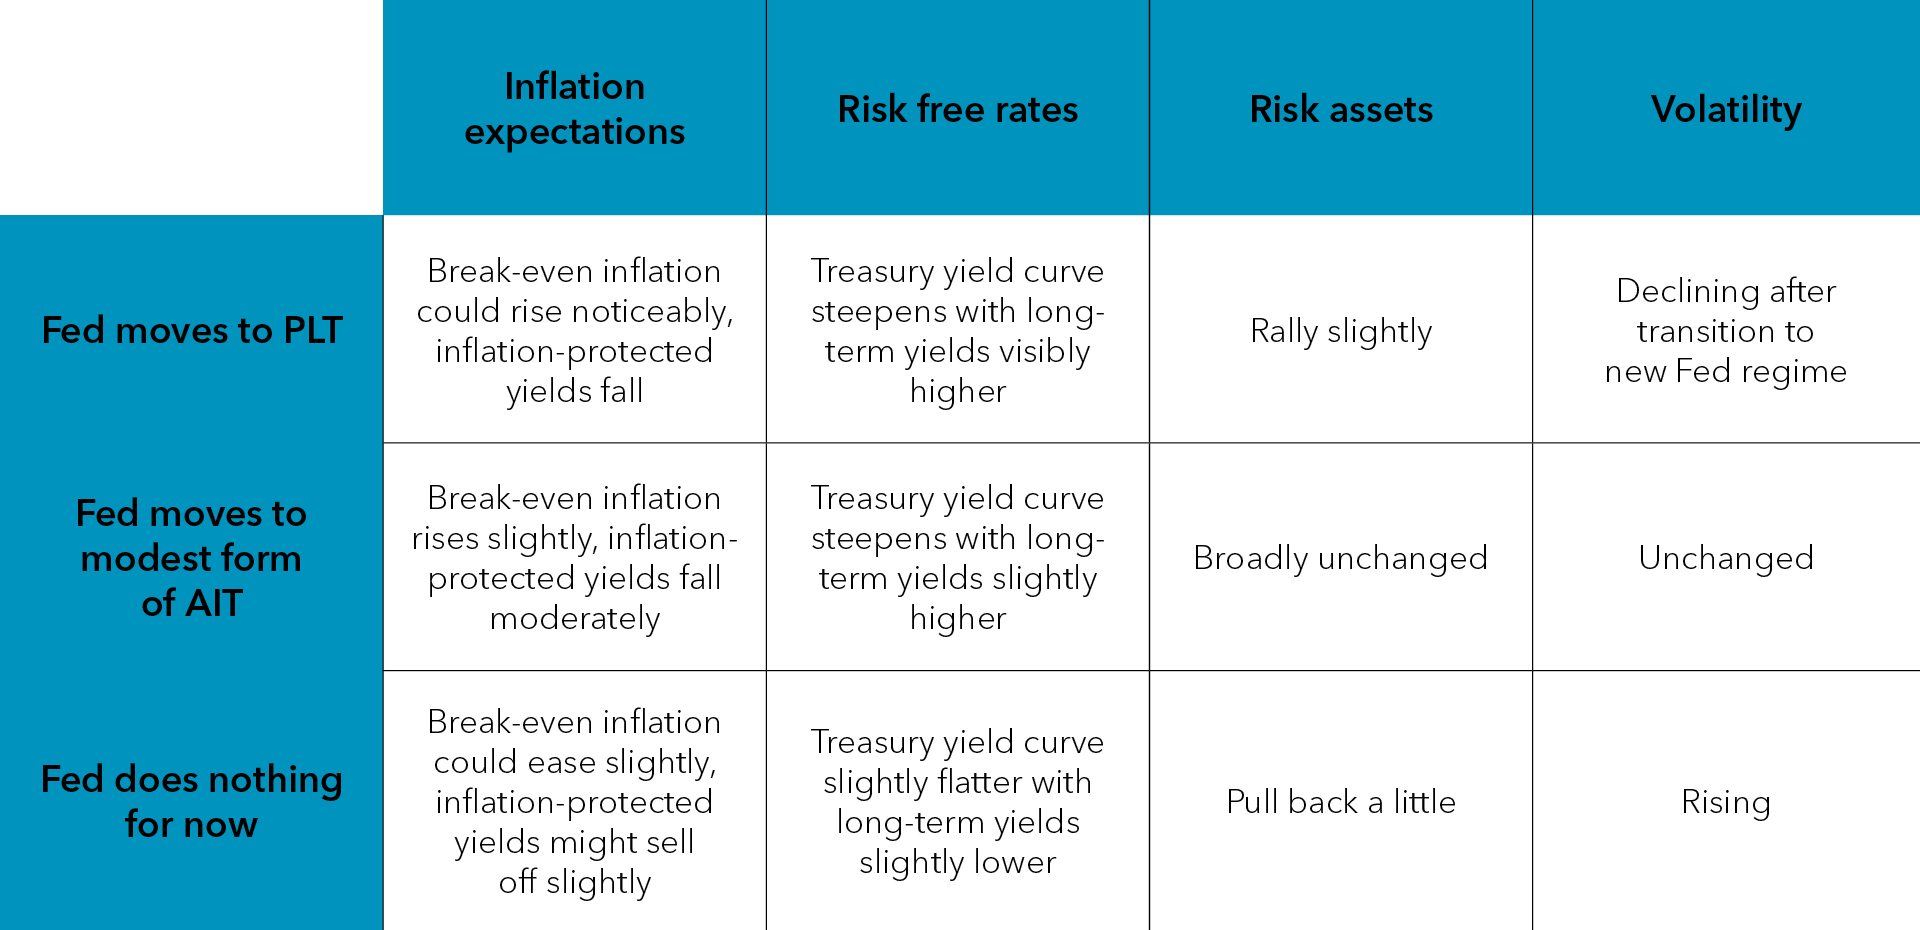 Potential market implications and inflation expectations.